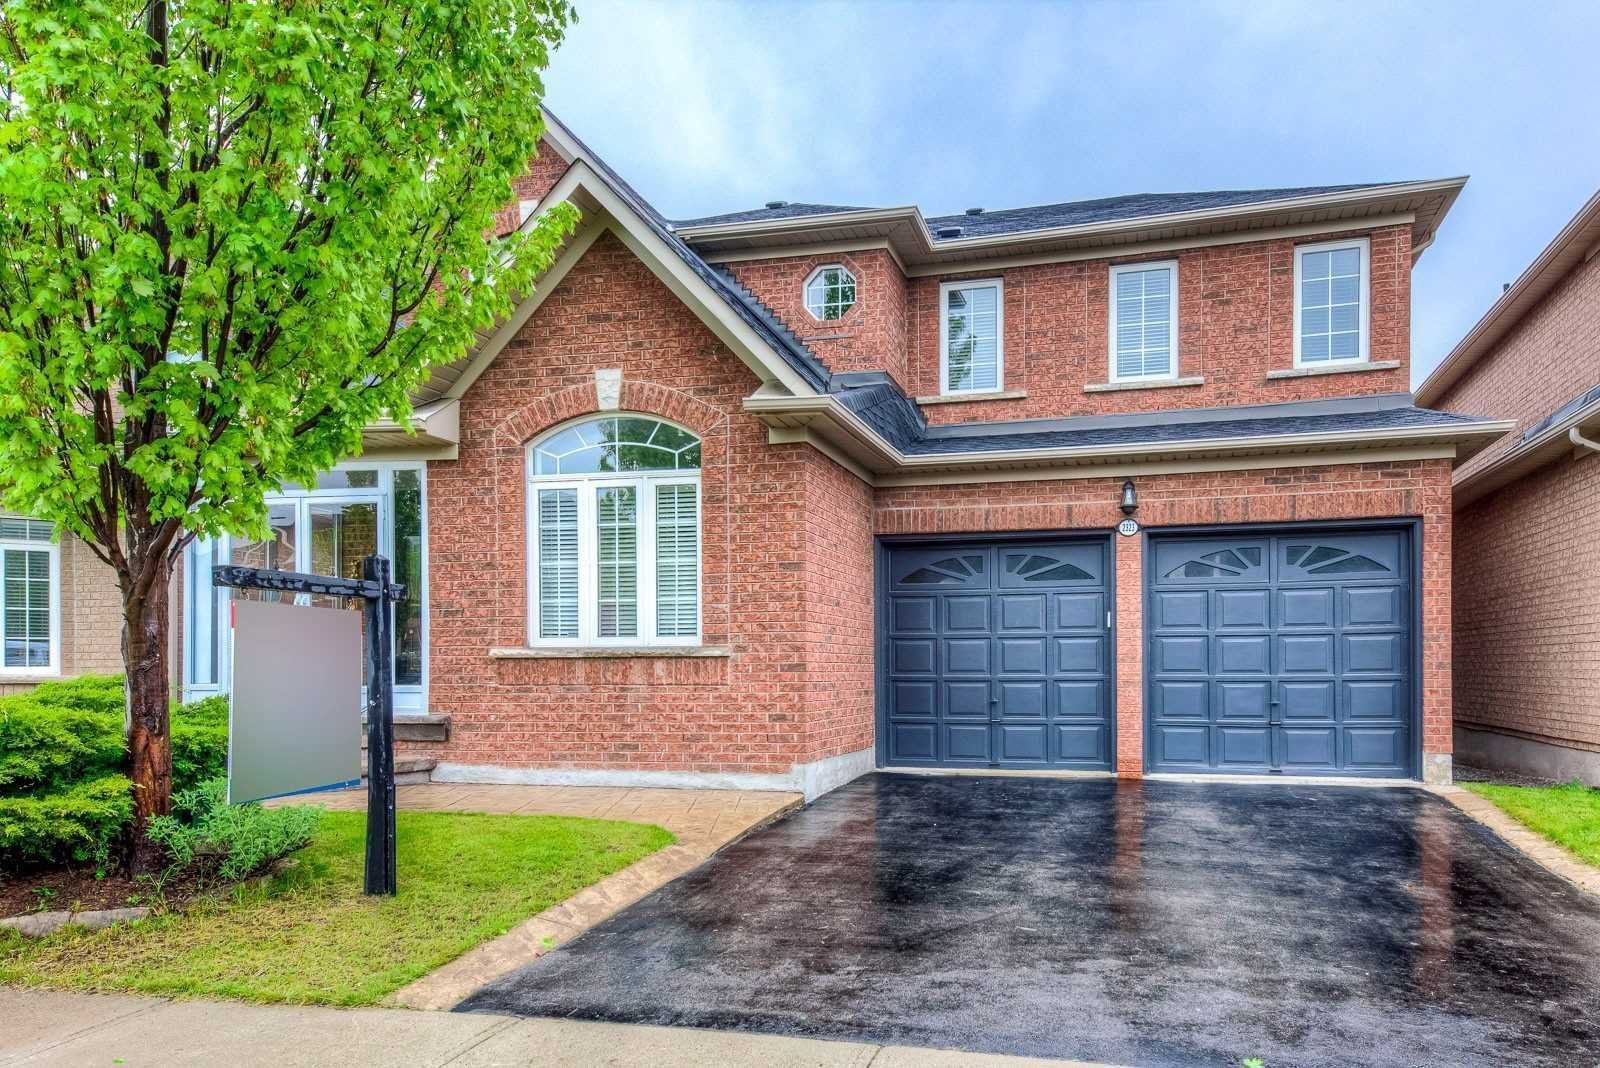 Main Photo: 2323 Falling Green Drive in Oakville: West Oak Trails House (2-Storey) for sale : MLS®# W4914286